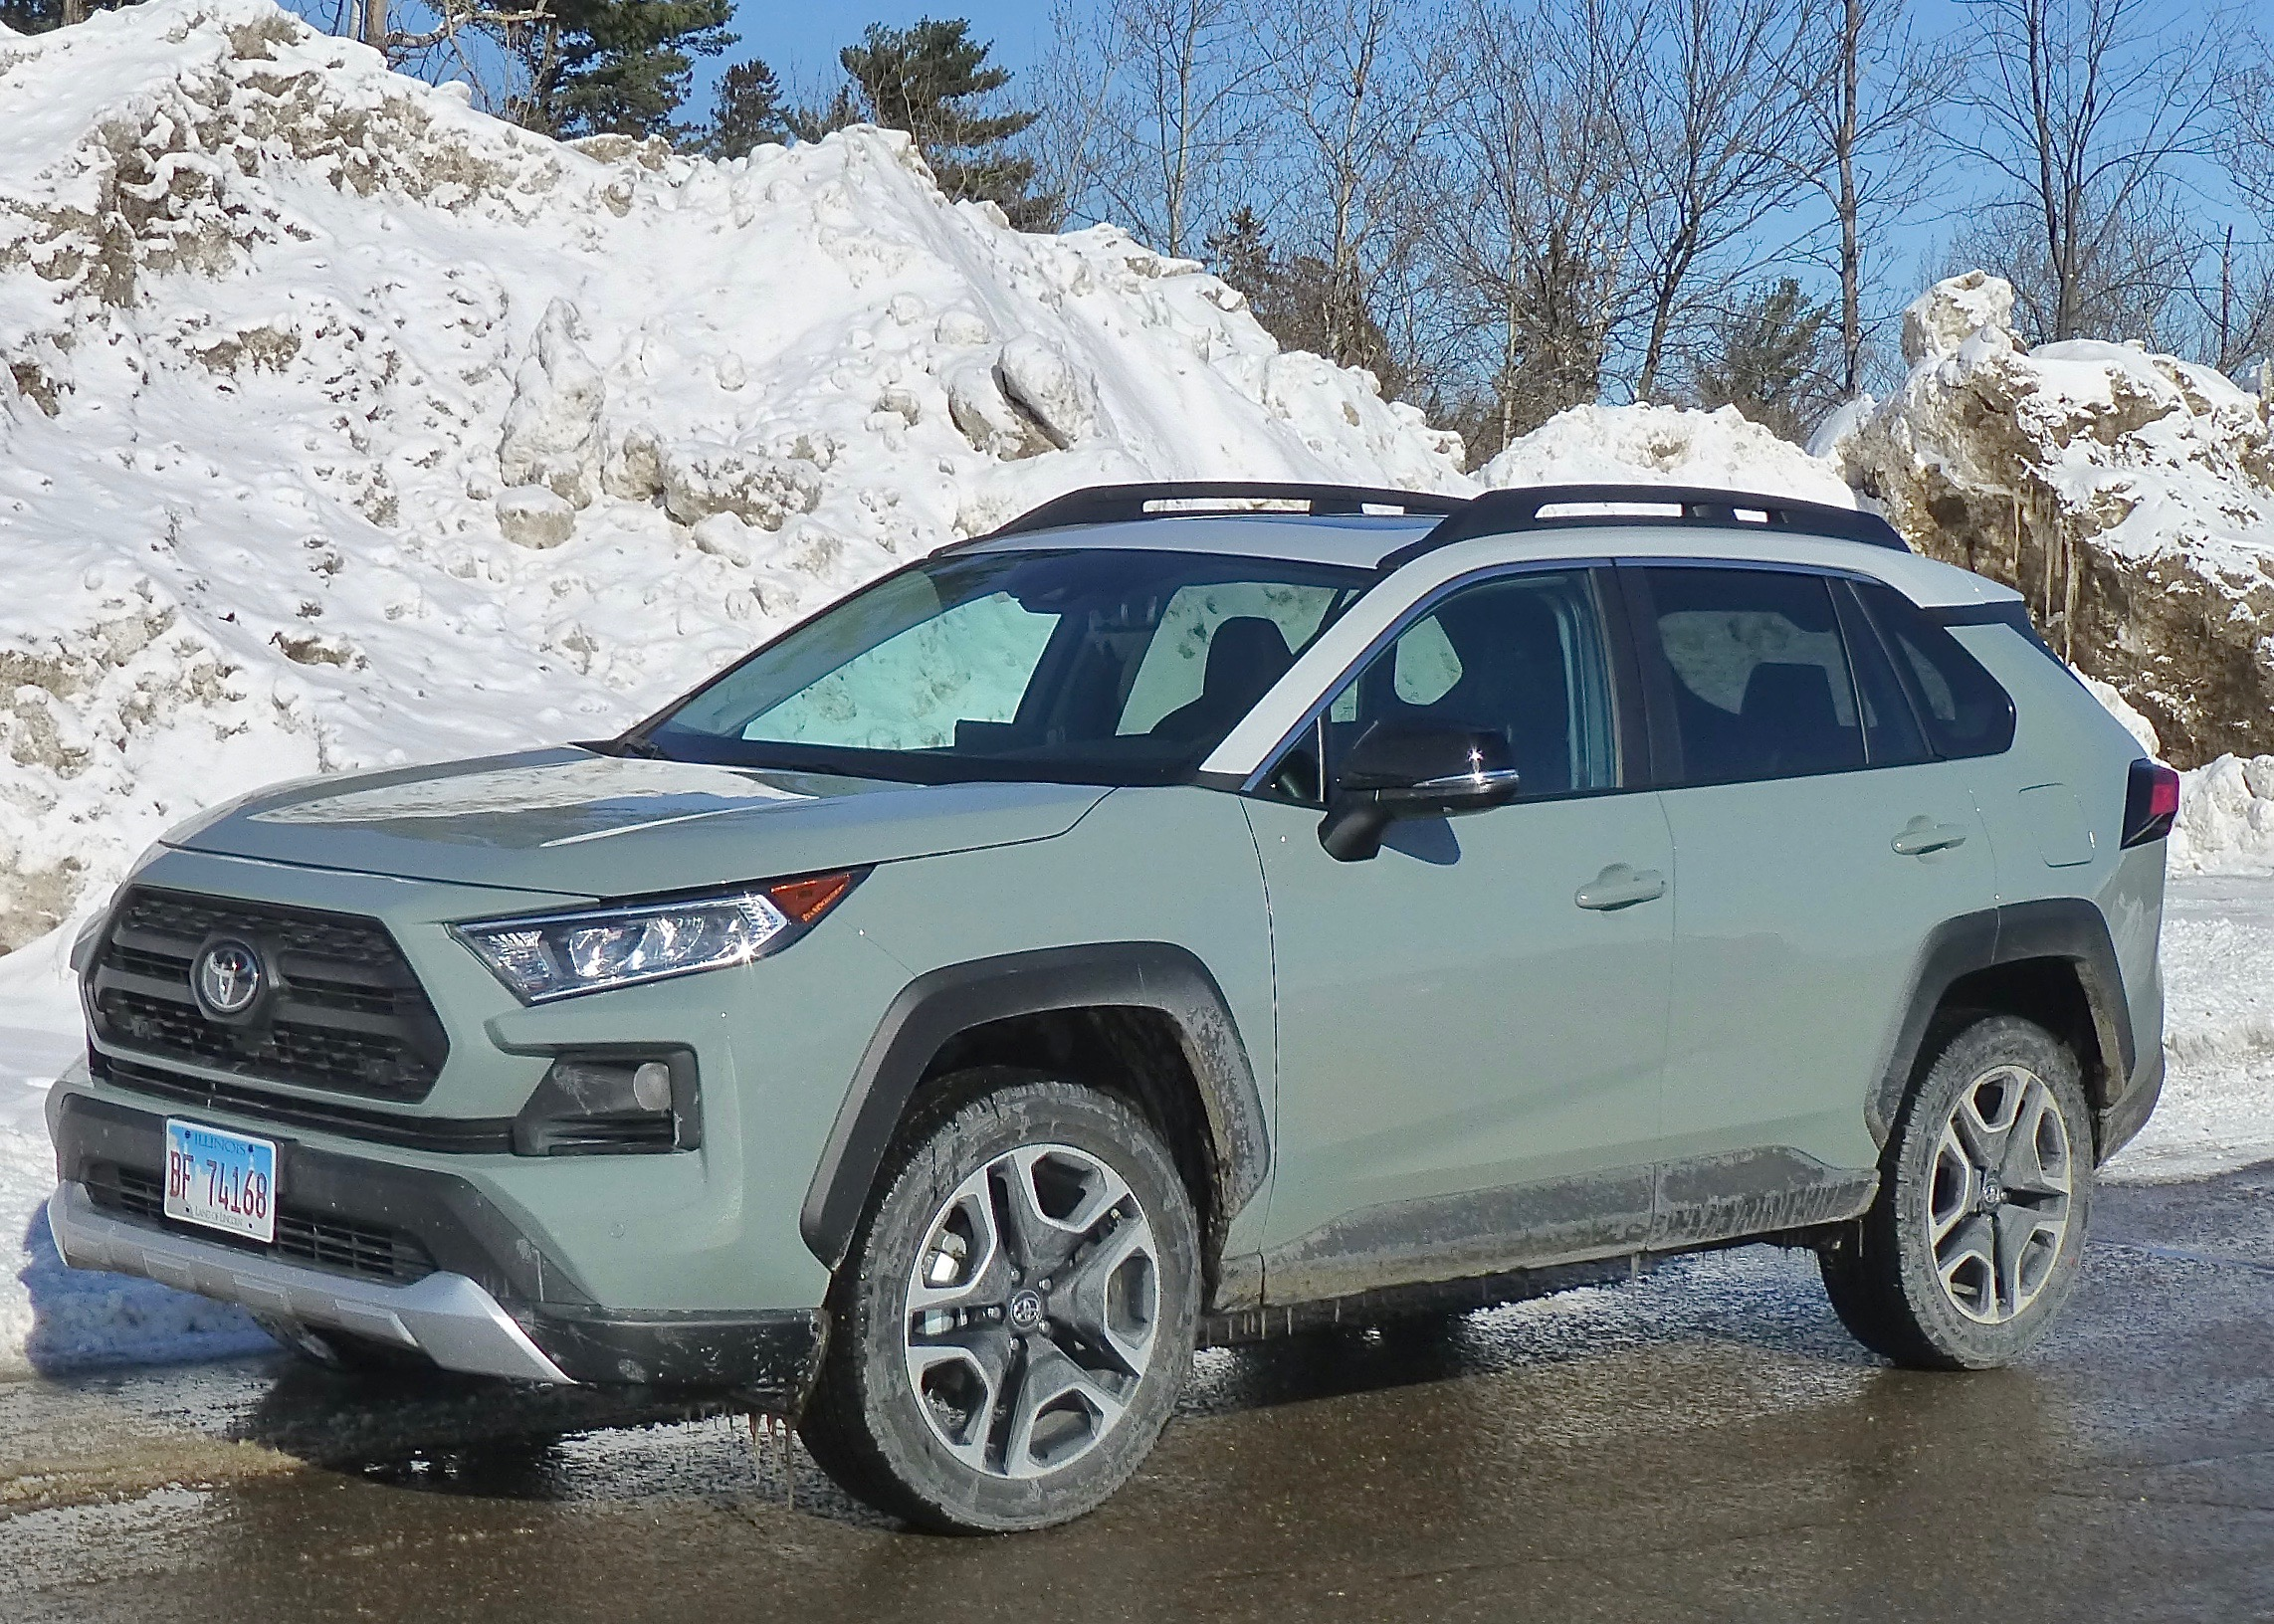 New Tacoma-like grille sets off new platform under all-new 2019 RAV4.